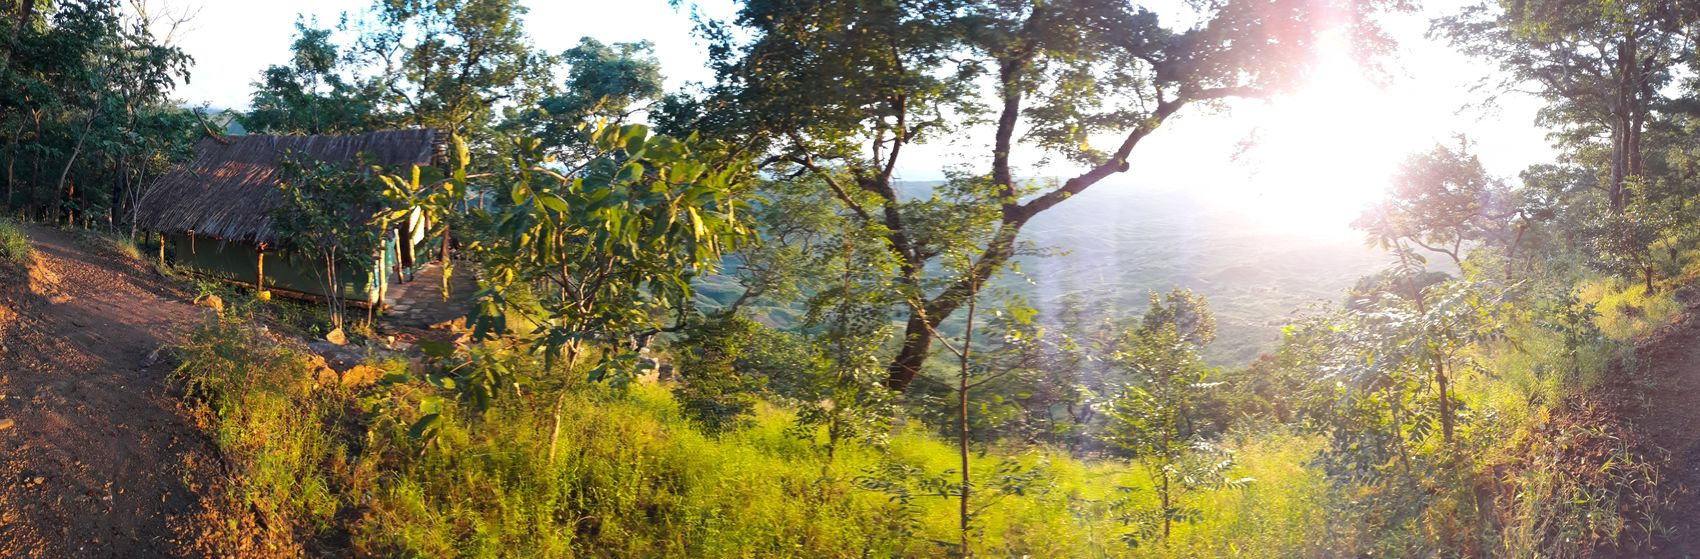 Sunrise 🌅 Tree Growth Nature Sunlight Low Angle View Freshness Beauty In Nature No People Forest Landscape Lake View Sunrise Collection 2017 Sunbeam Capture The Moment Sunrise Silhouette Tranquility Mountain Range Malawi Travel Photography No Filter, No Edit, Just Photography Green Color Beauty In Nature Scenics Tent Mountain Hikingphotography